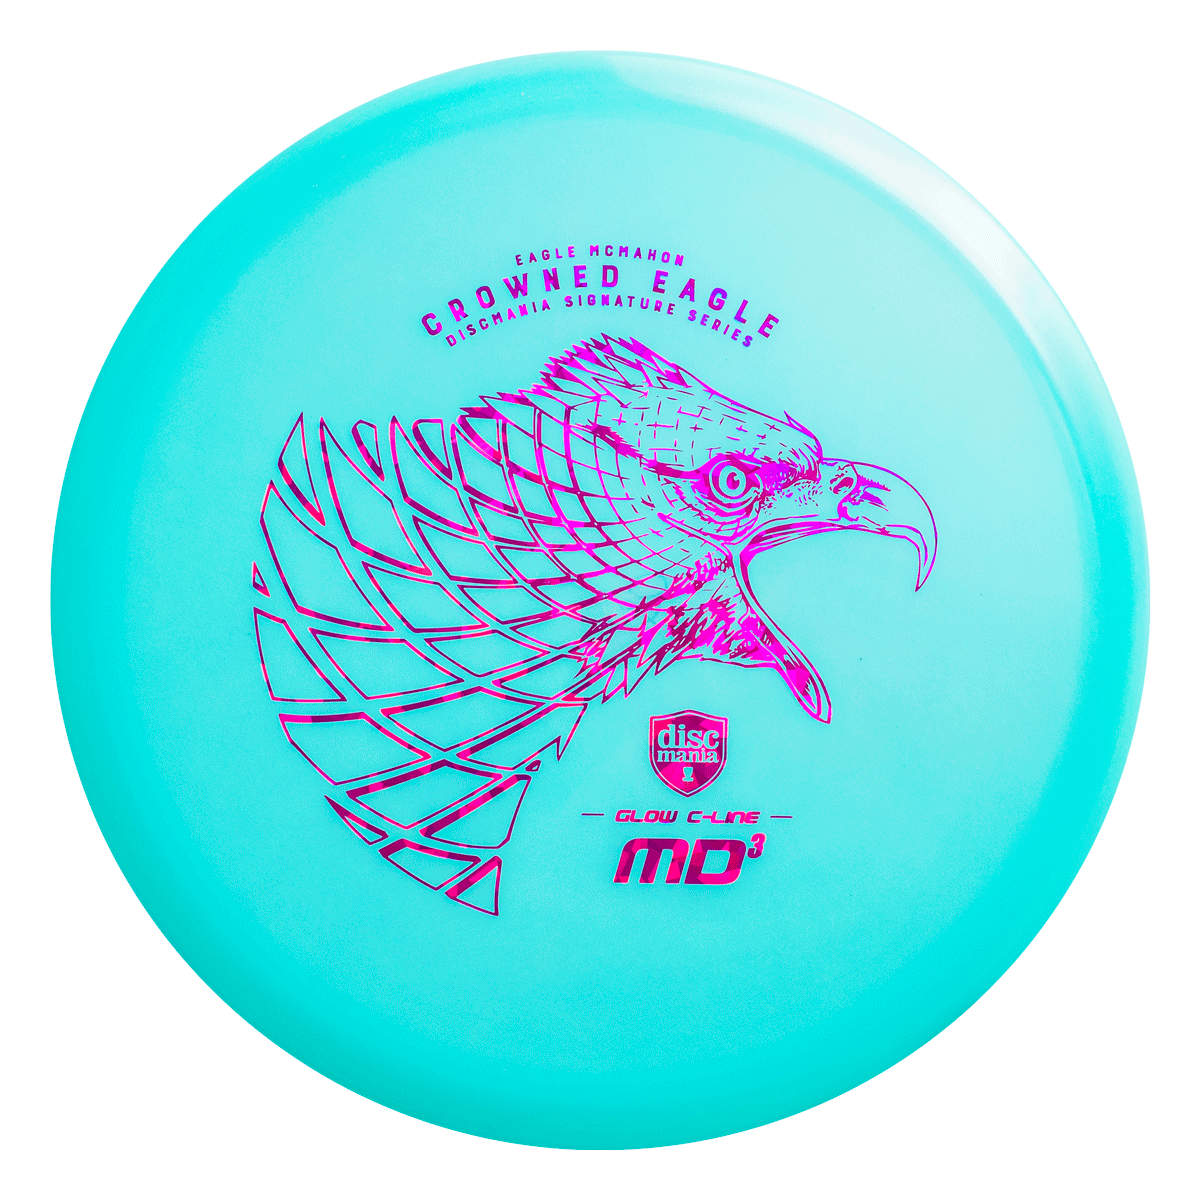 McMahon Color Glow C-Line MD3 - Crowned Eagle